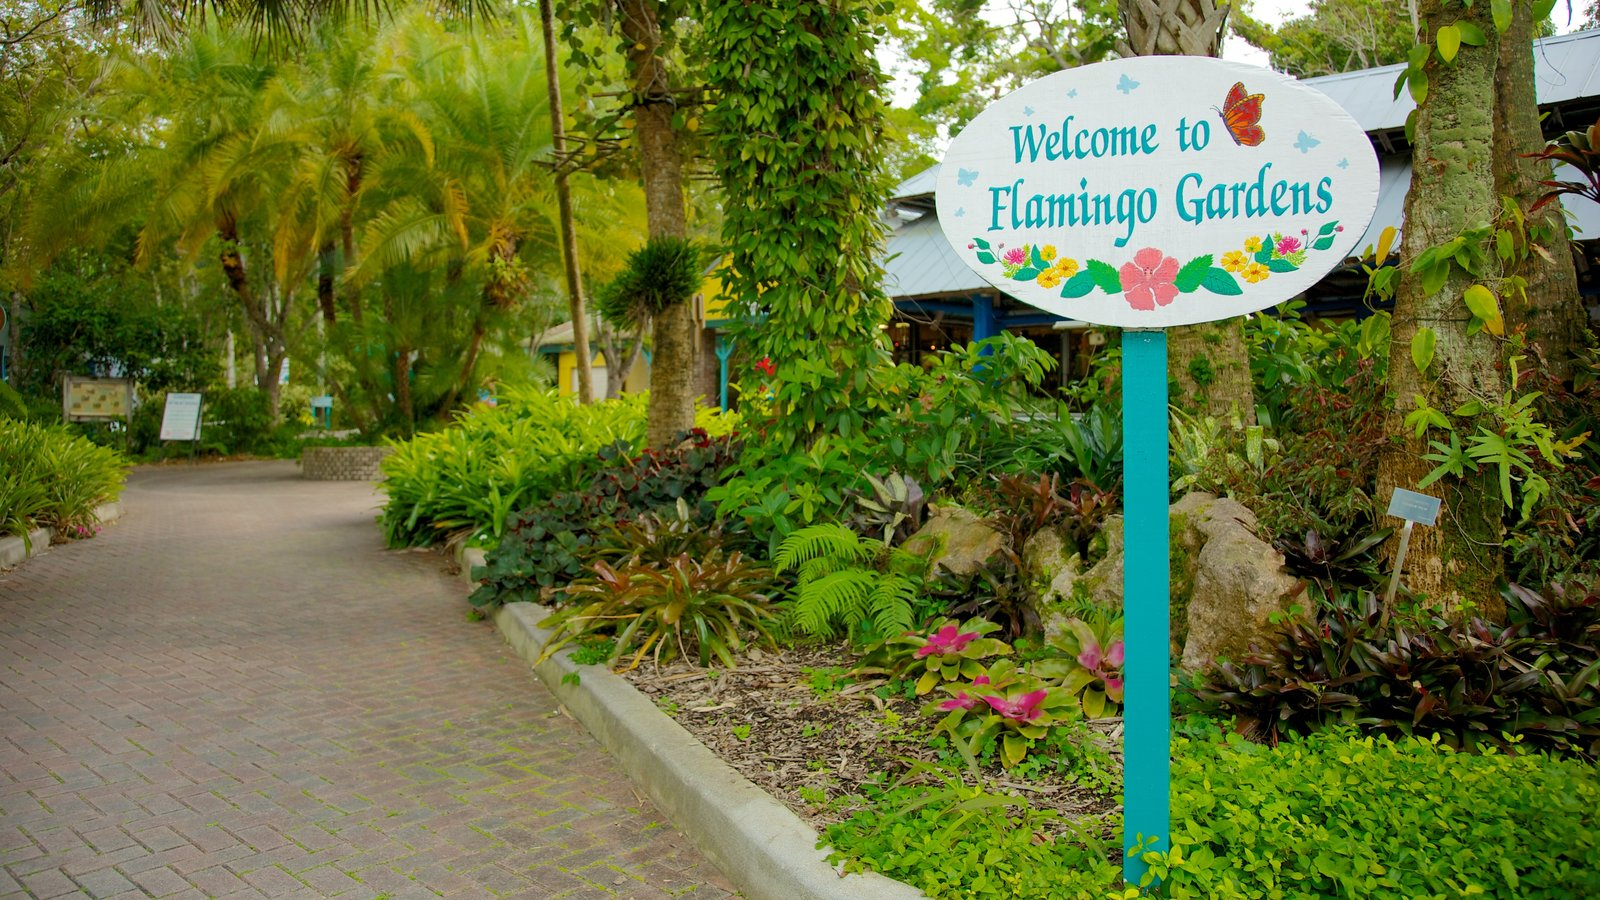 Flamingo Gardens which includes a park, signage and landscape views